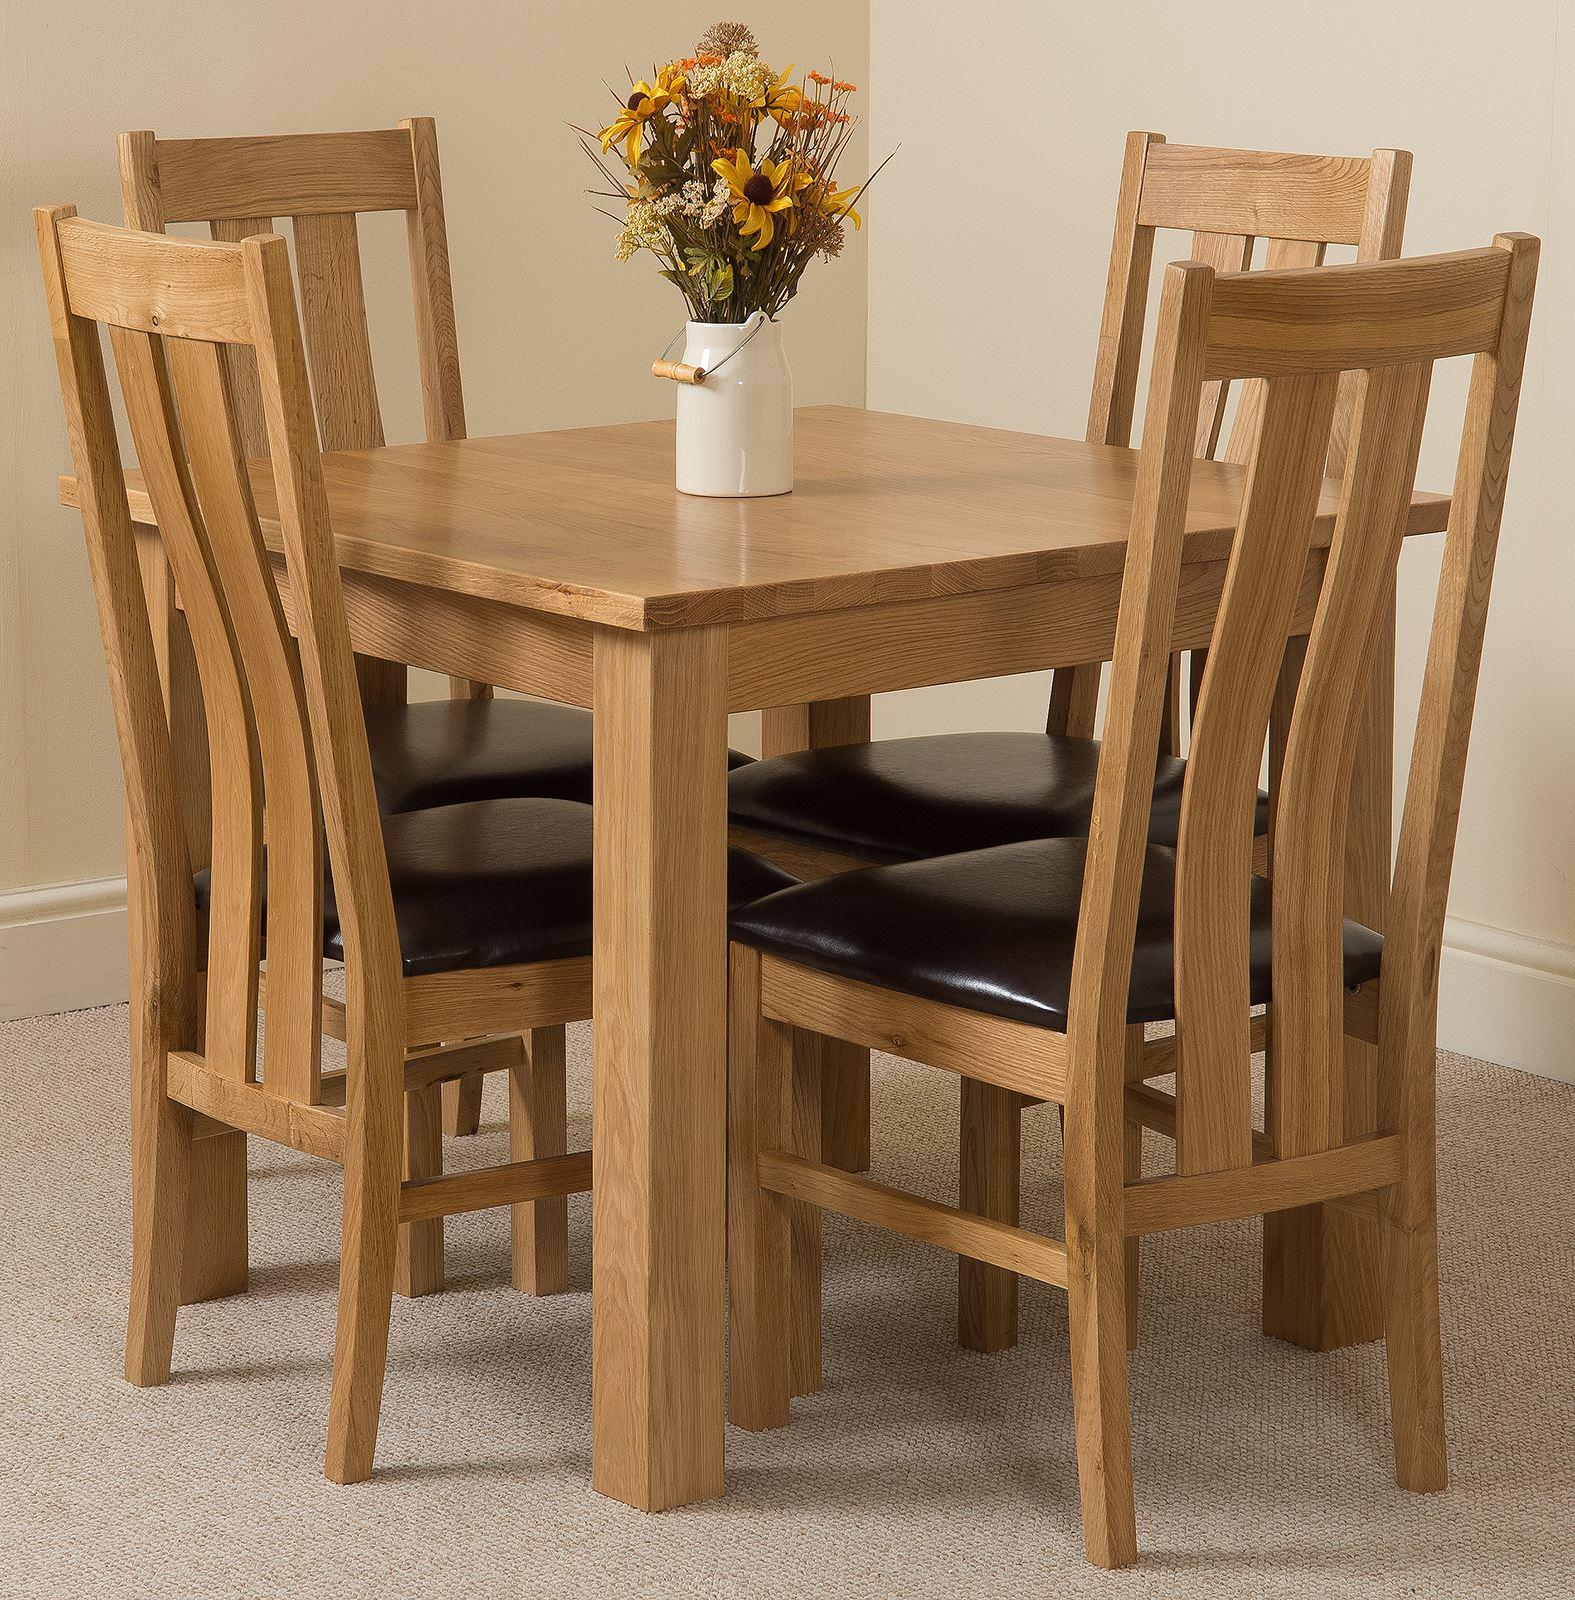 Oslo Solid Oak Dining Table and 4 Princeton Solid Oak Leather Chairs